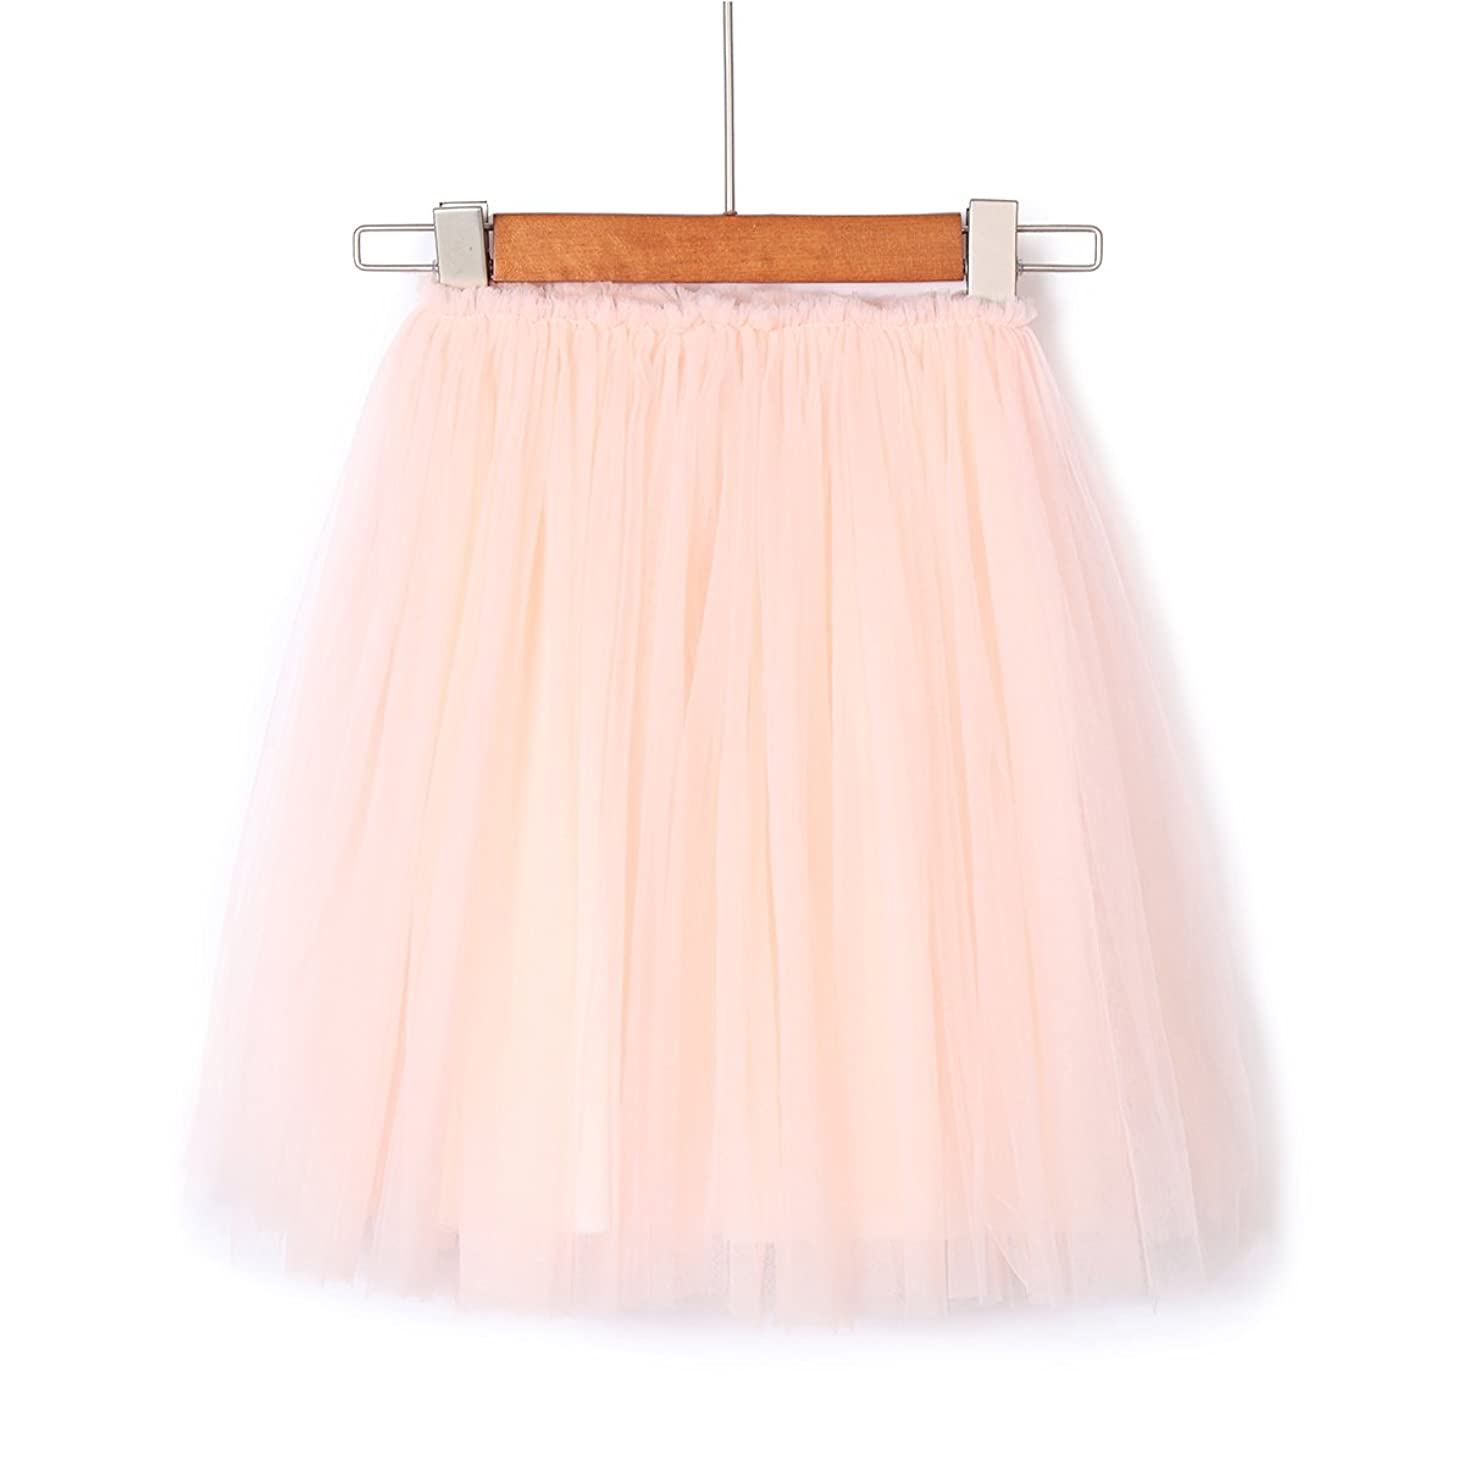 Flofallzique Tulle Tutu Skirt for 1-12 Year Old Girls Dancing Party Girls Clothes